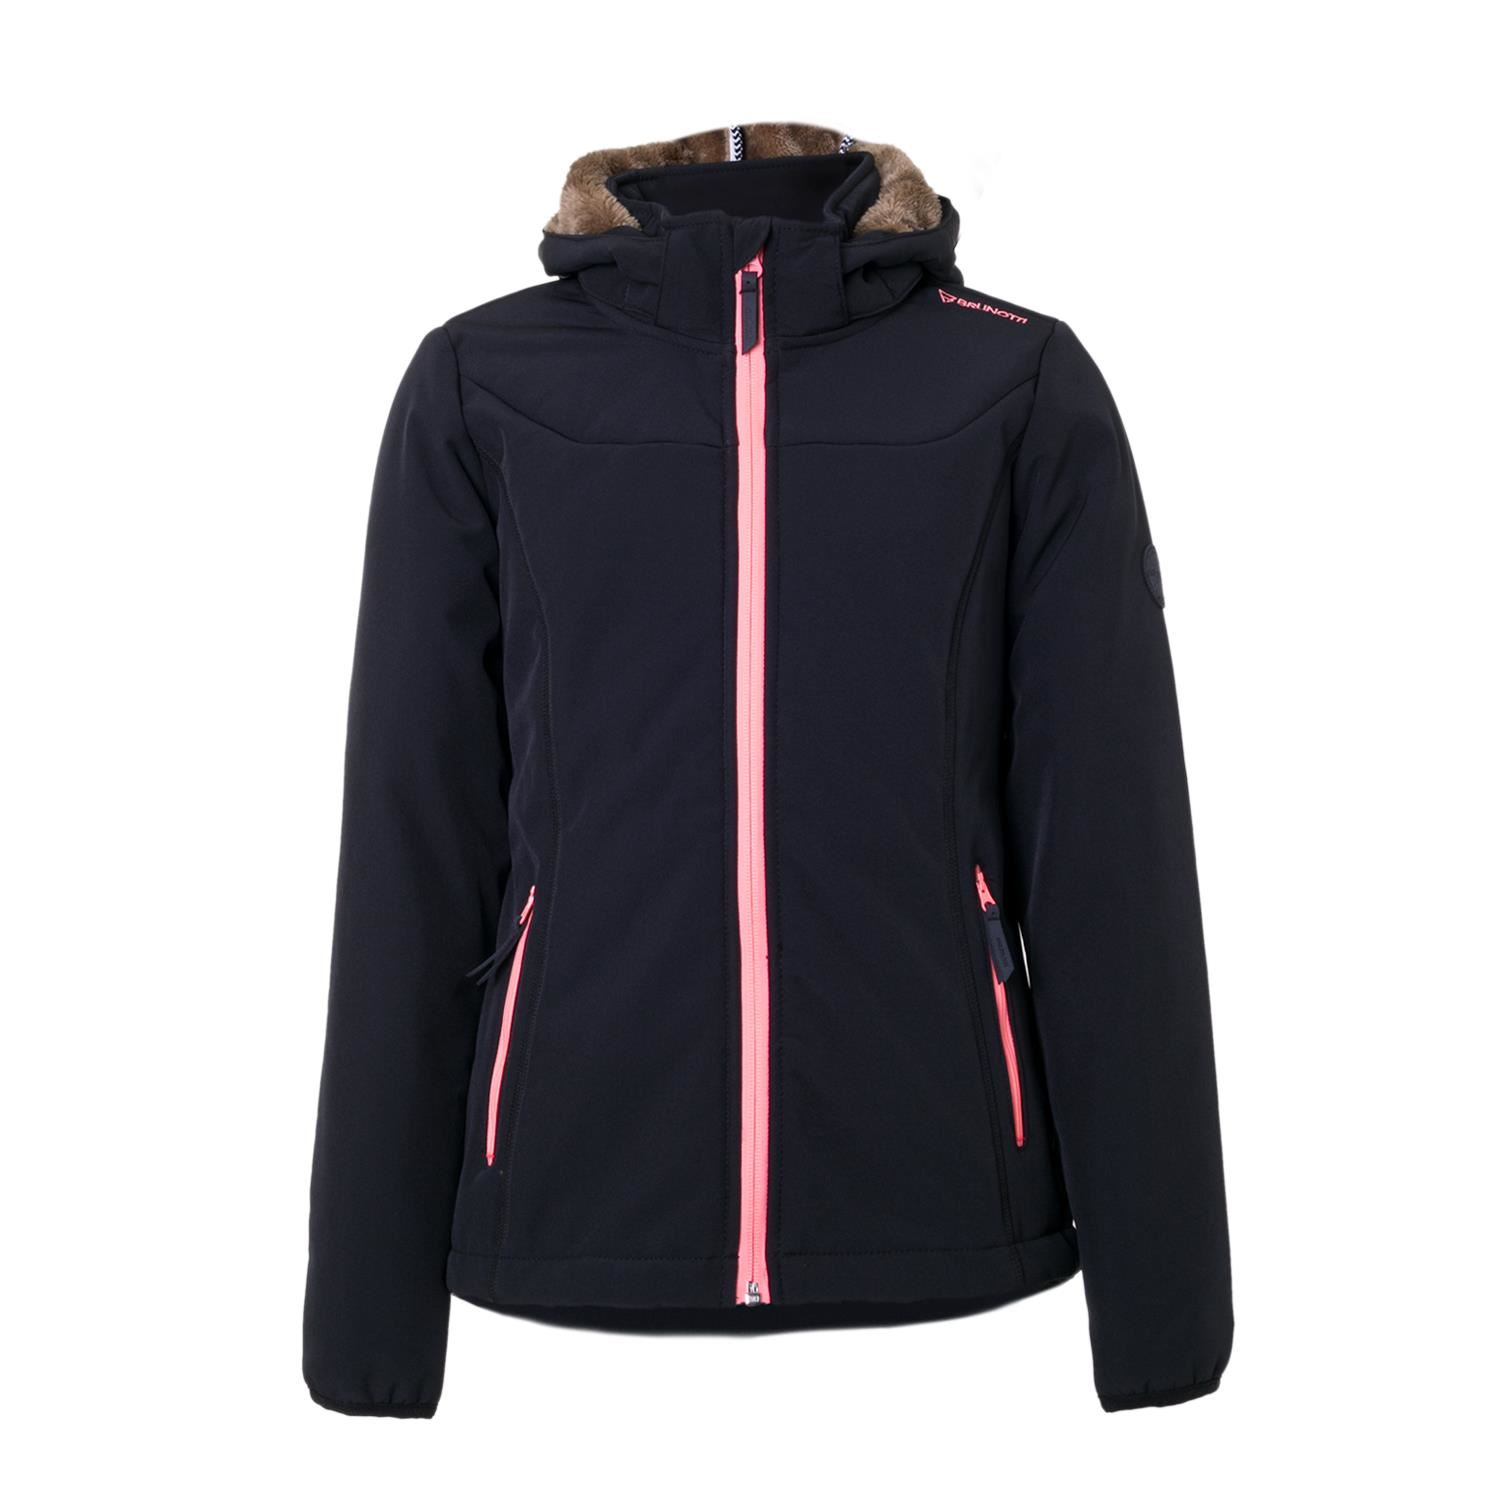 Brunotti Naosy JR Girls Softshell jacket